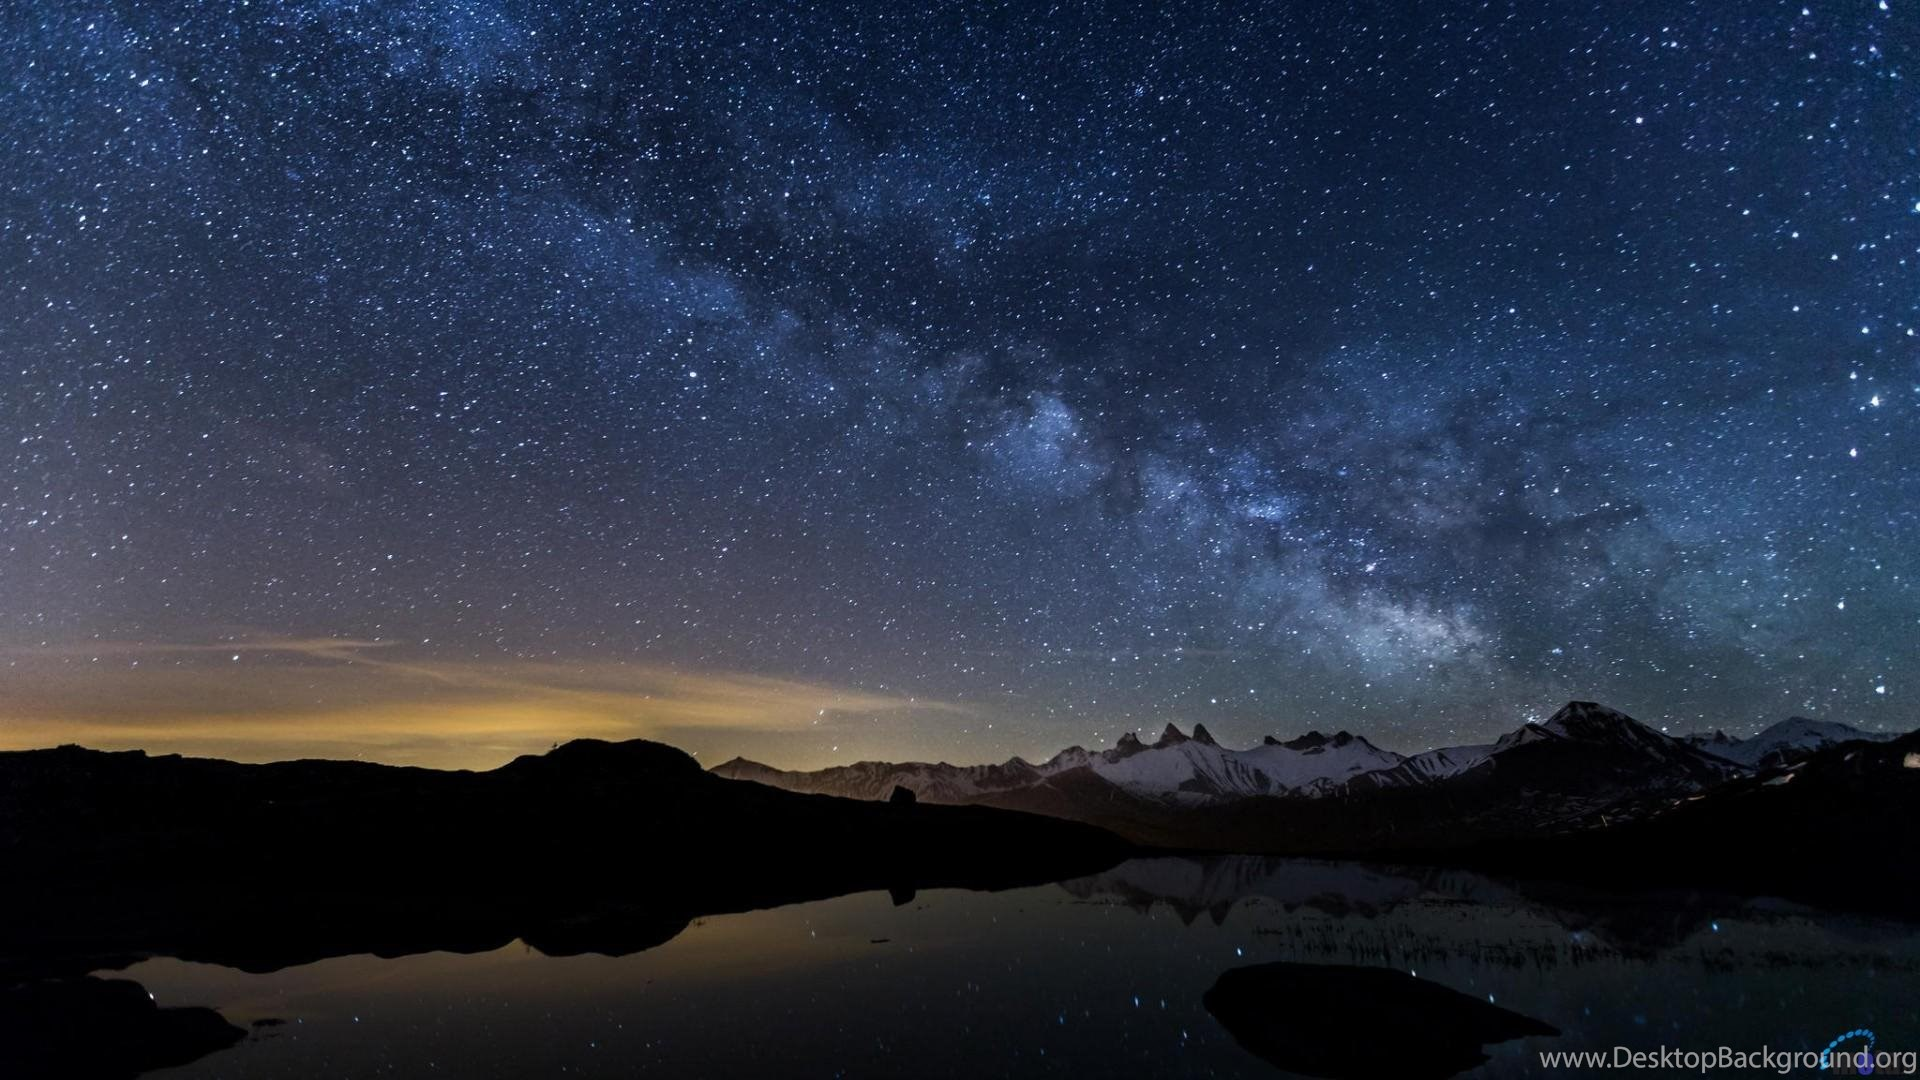 High resolution best starry night sky wallpapers 1080p - Star night wallpaper ...